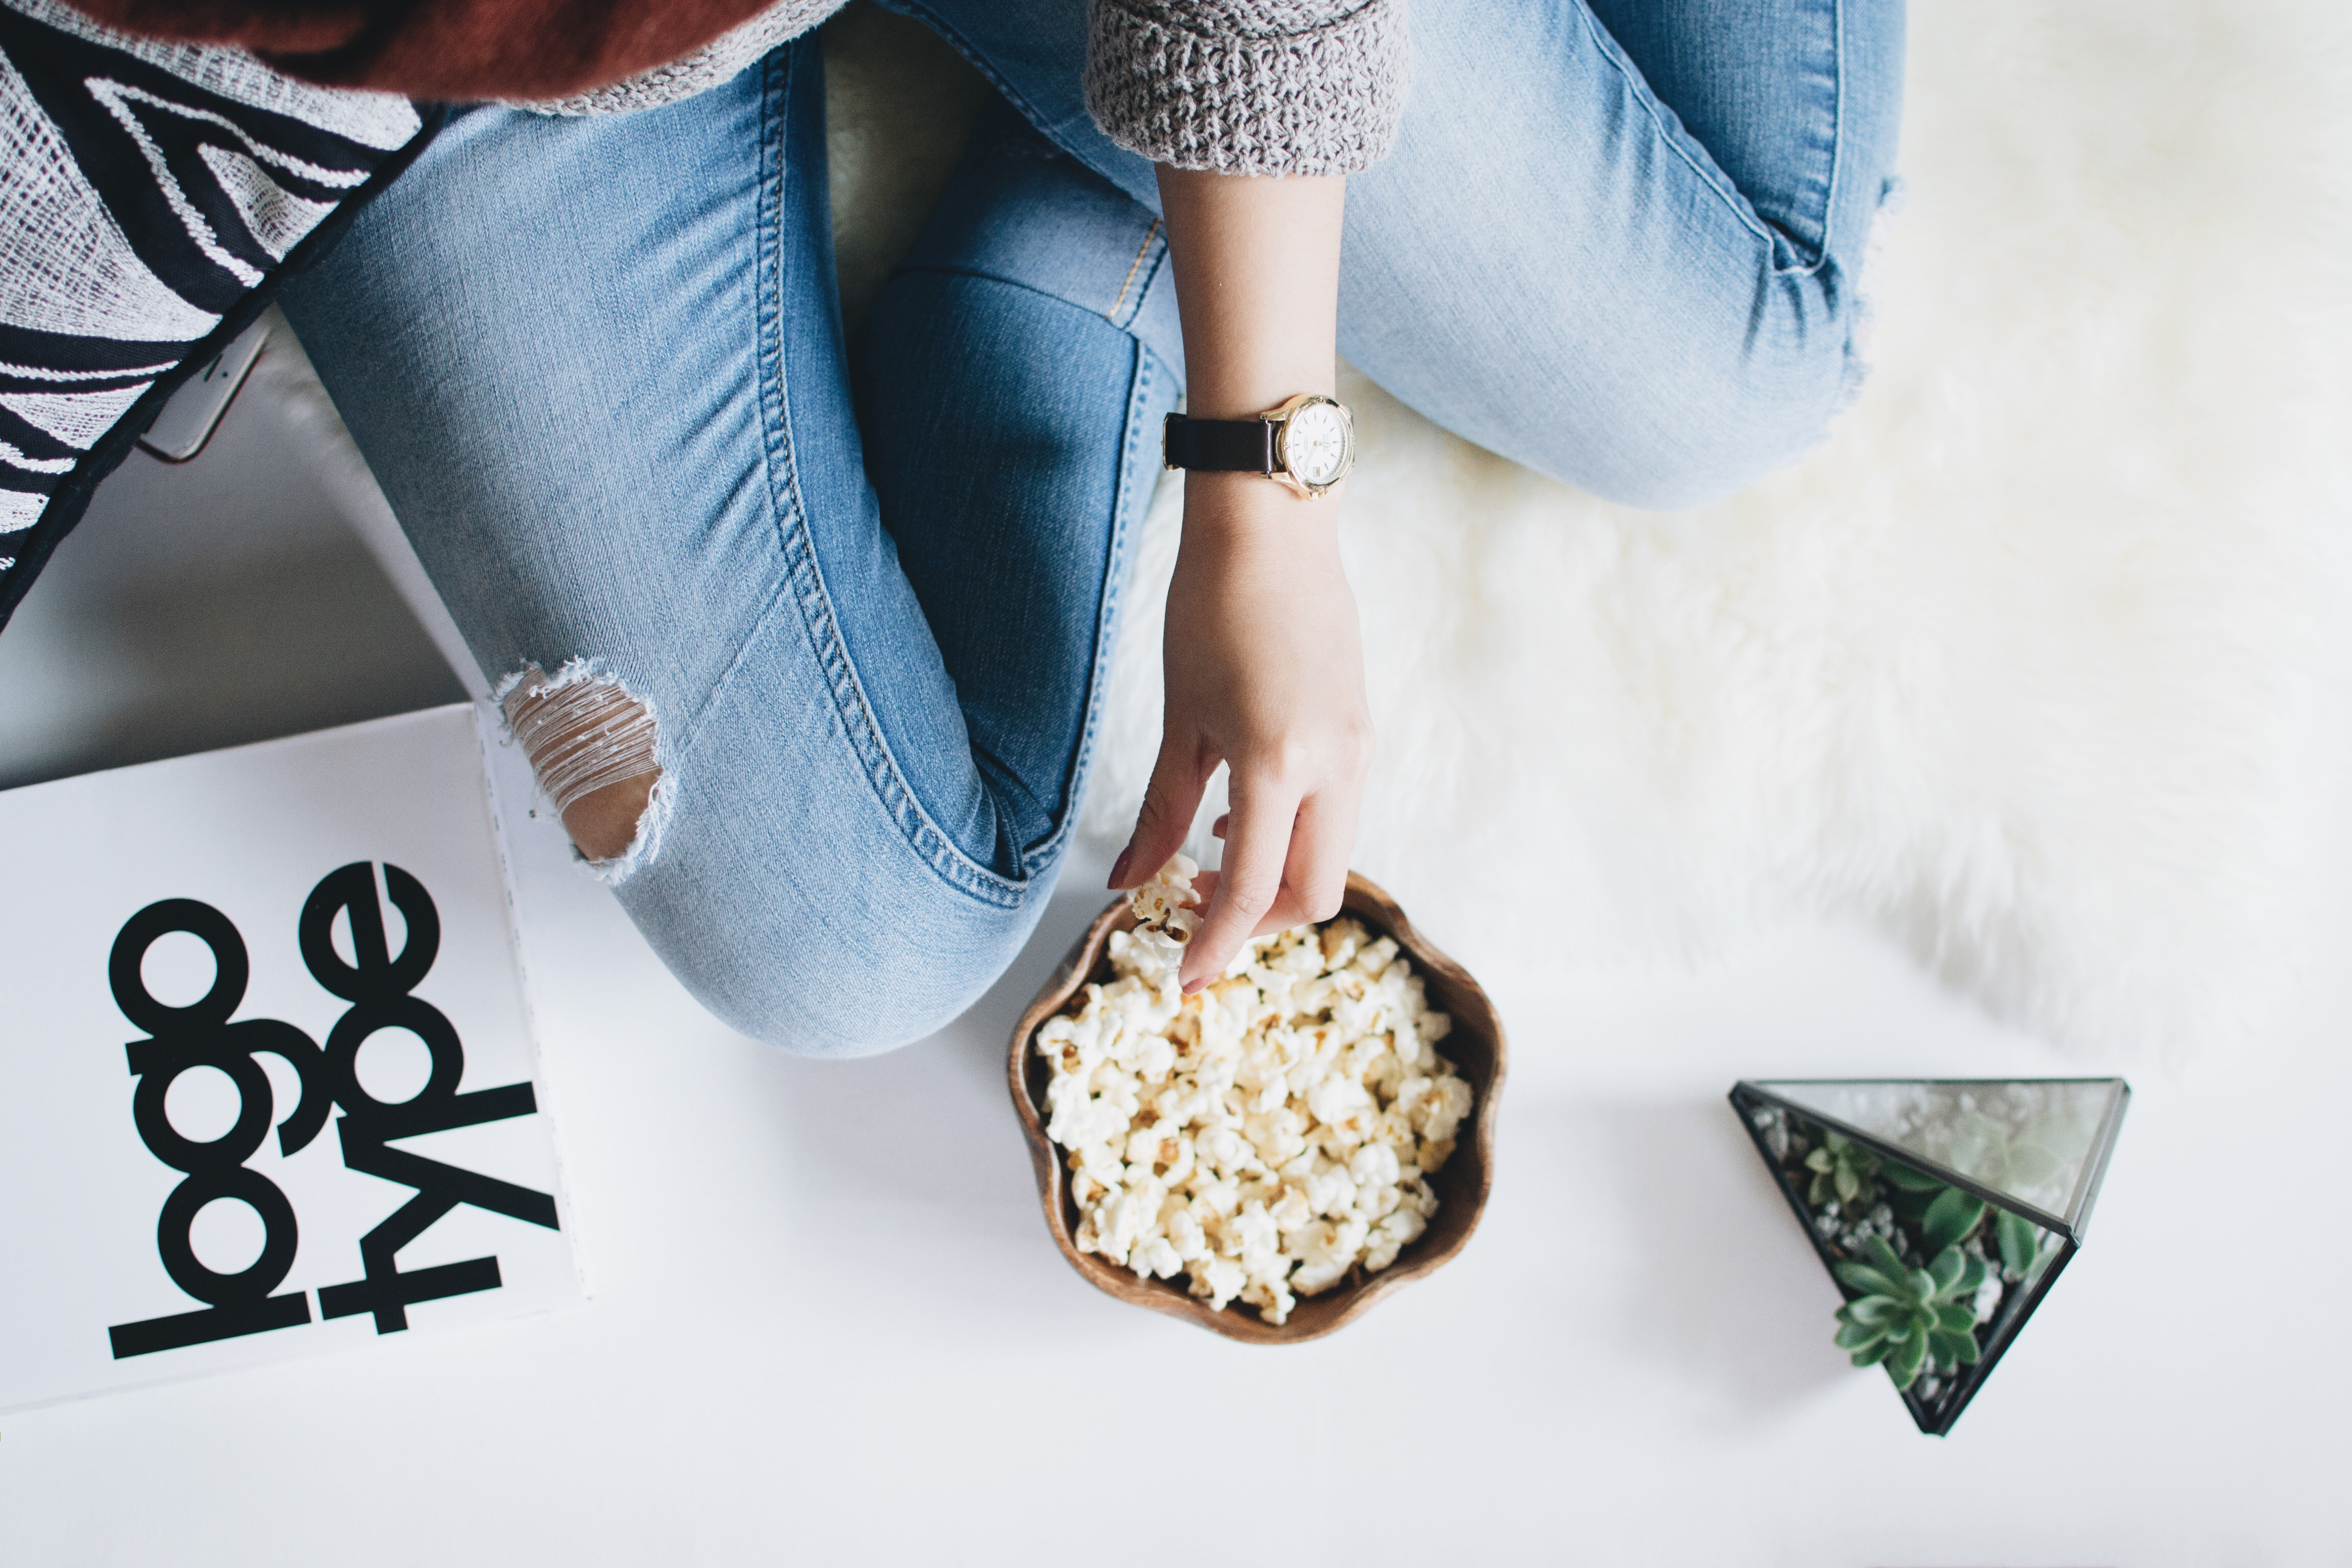 A person in ripped jeans eating popcorn alongside a succulent plant and typographic sample